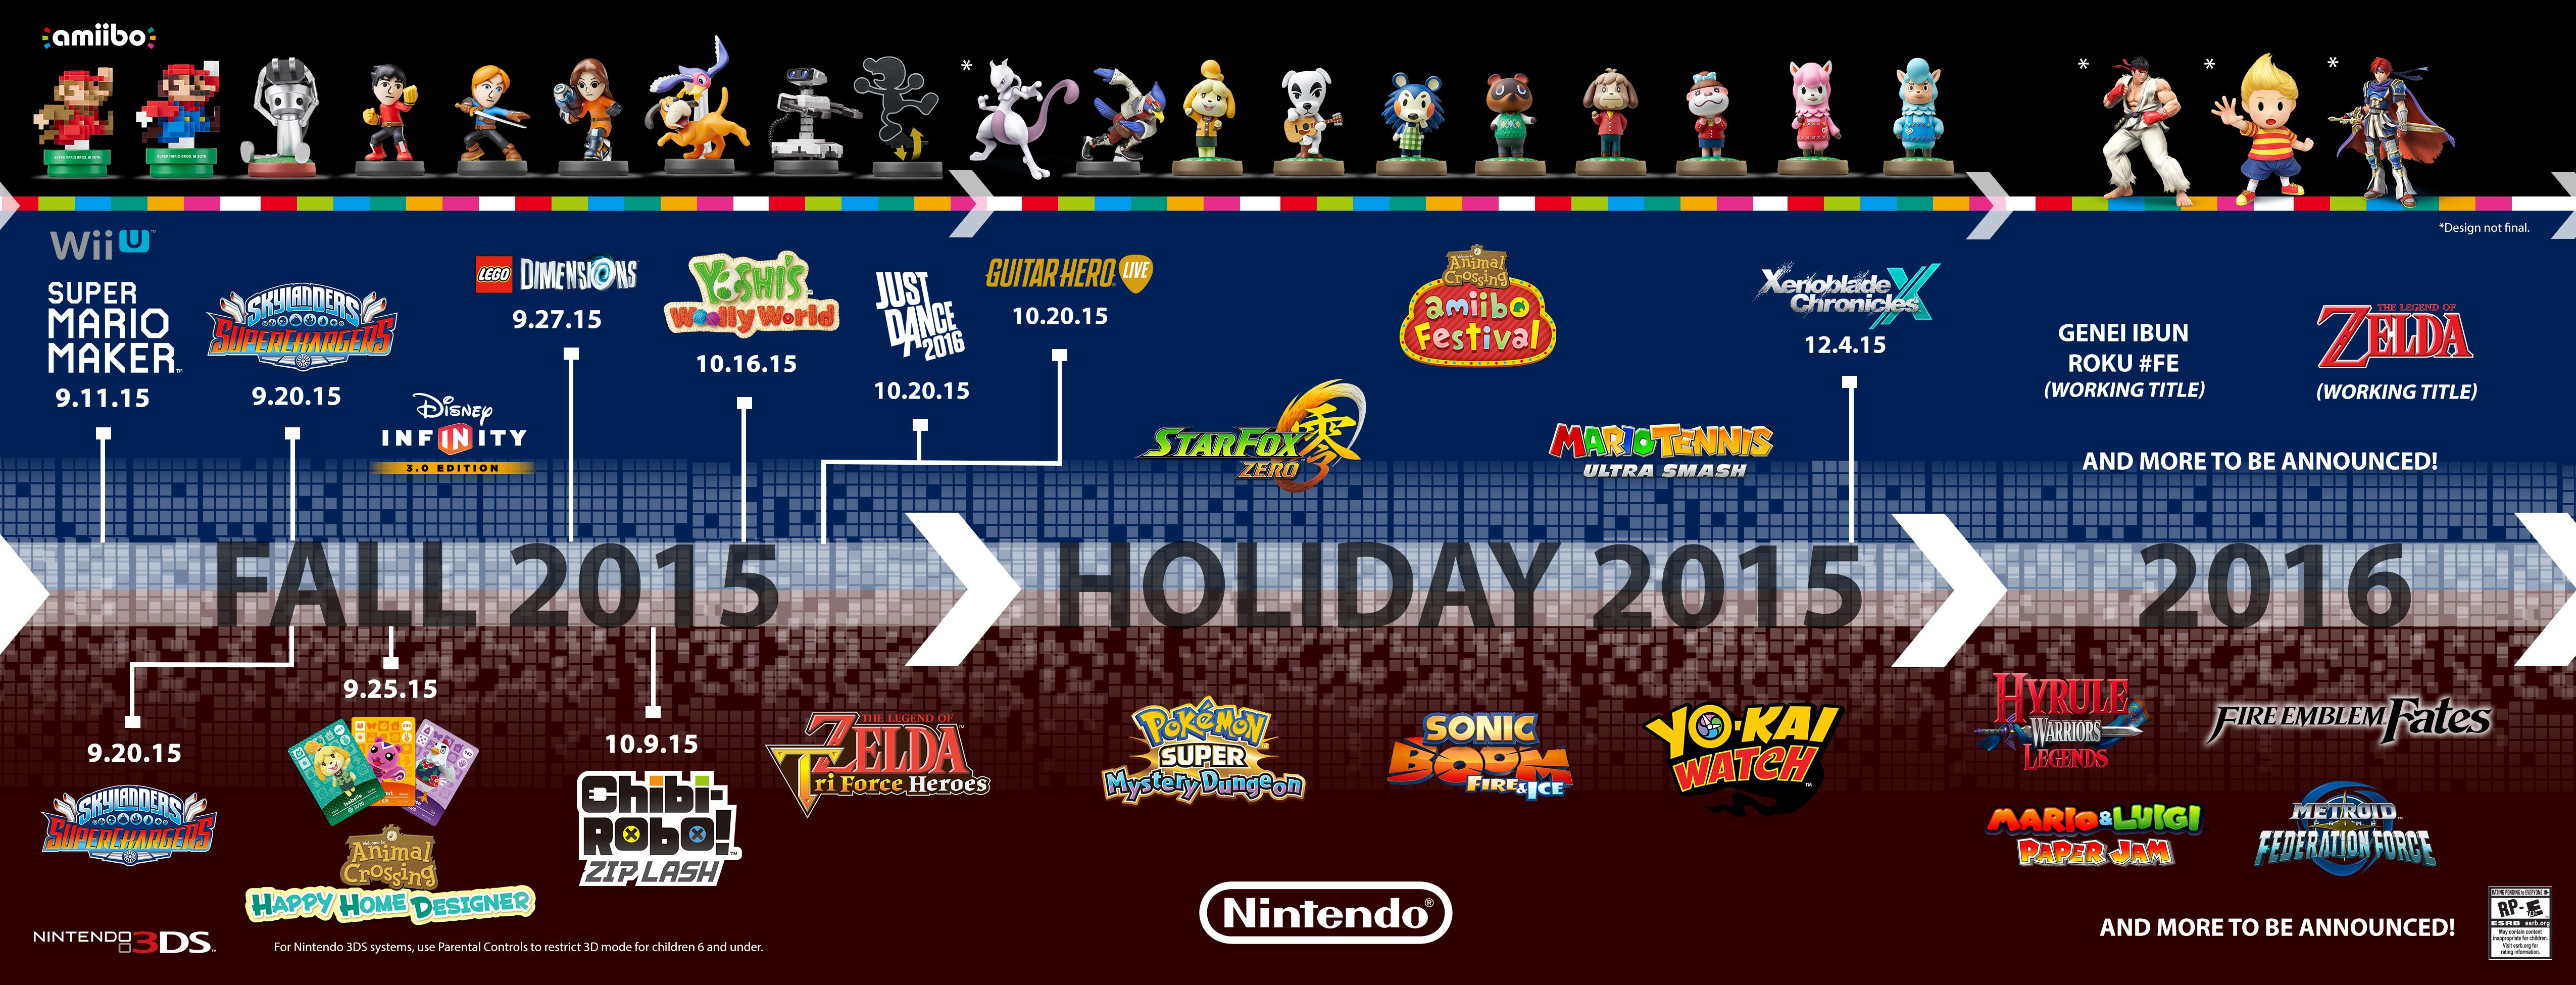 http://images.nintendolife.com/news/2015/06/nintendo_e3_roadmap_infographic_shows_off_upcoming_releases_on_wii_u_and_3ds/attachment/0/original.jpg